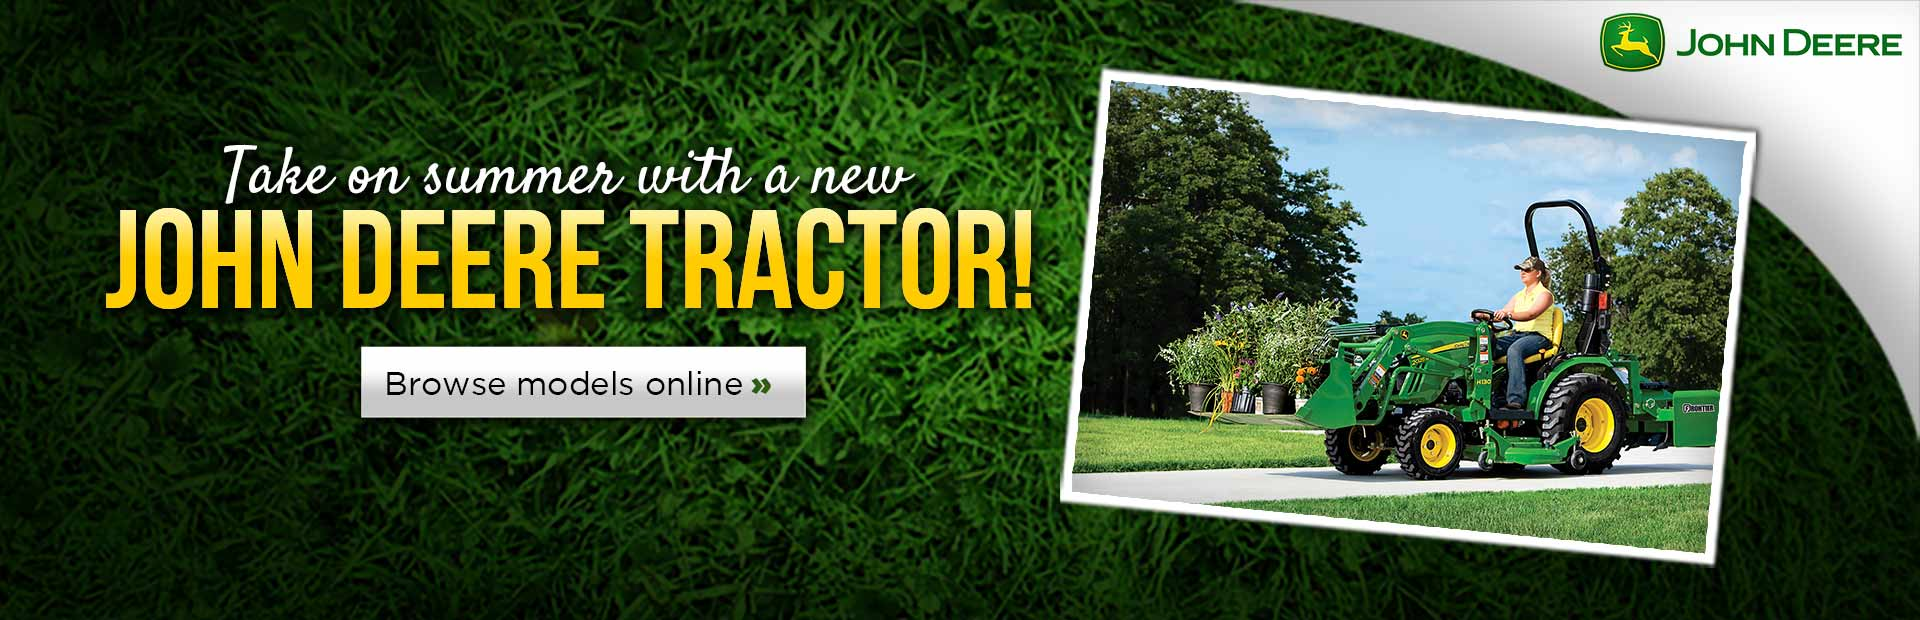 Click here to browse John Deere tractors.